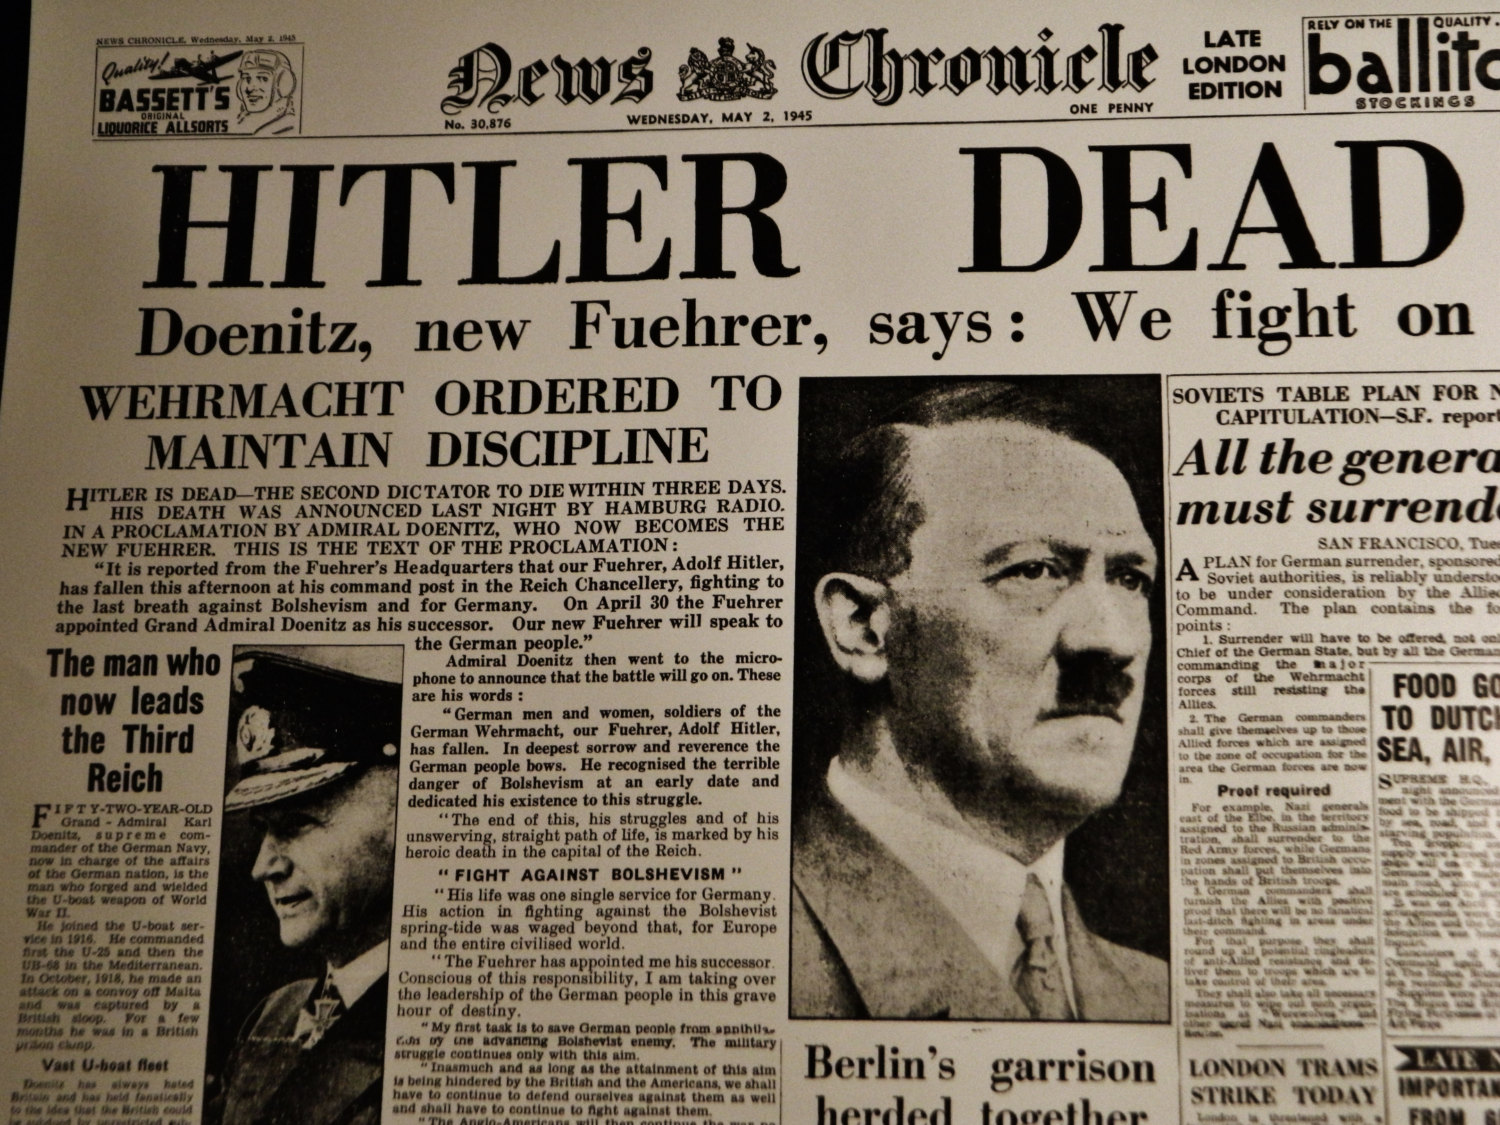 Adolf Hitler is dead. Adolf Hitler está morto.